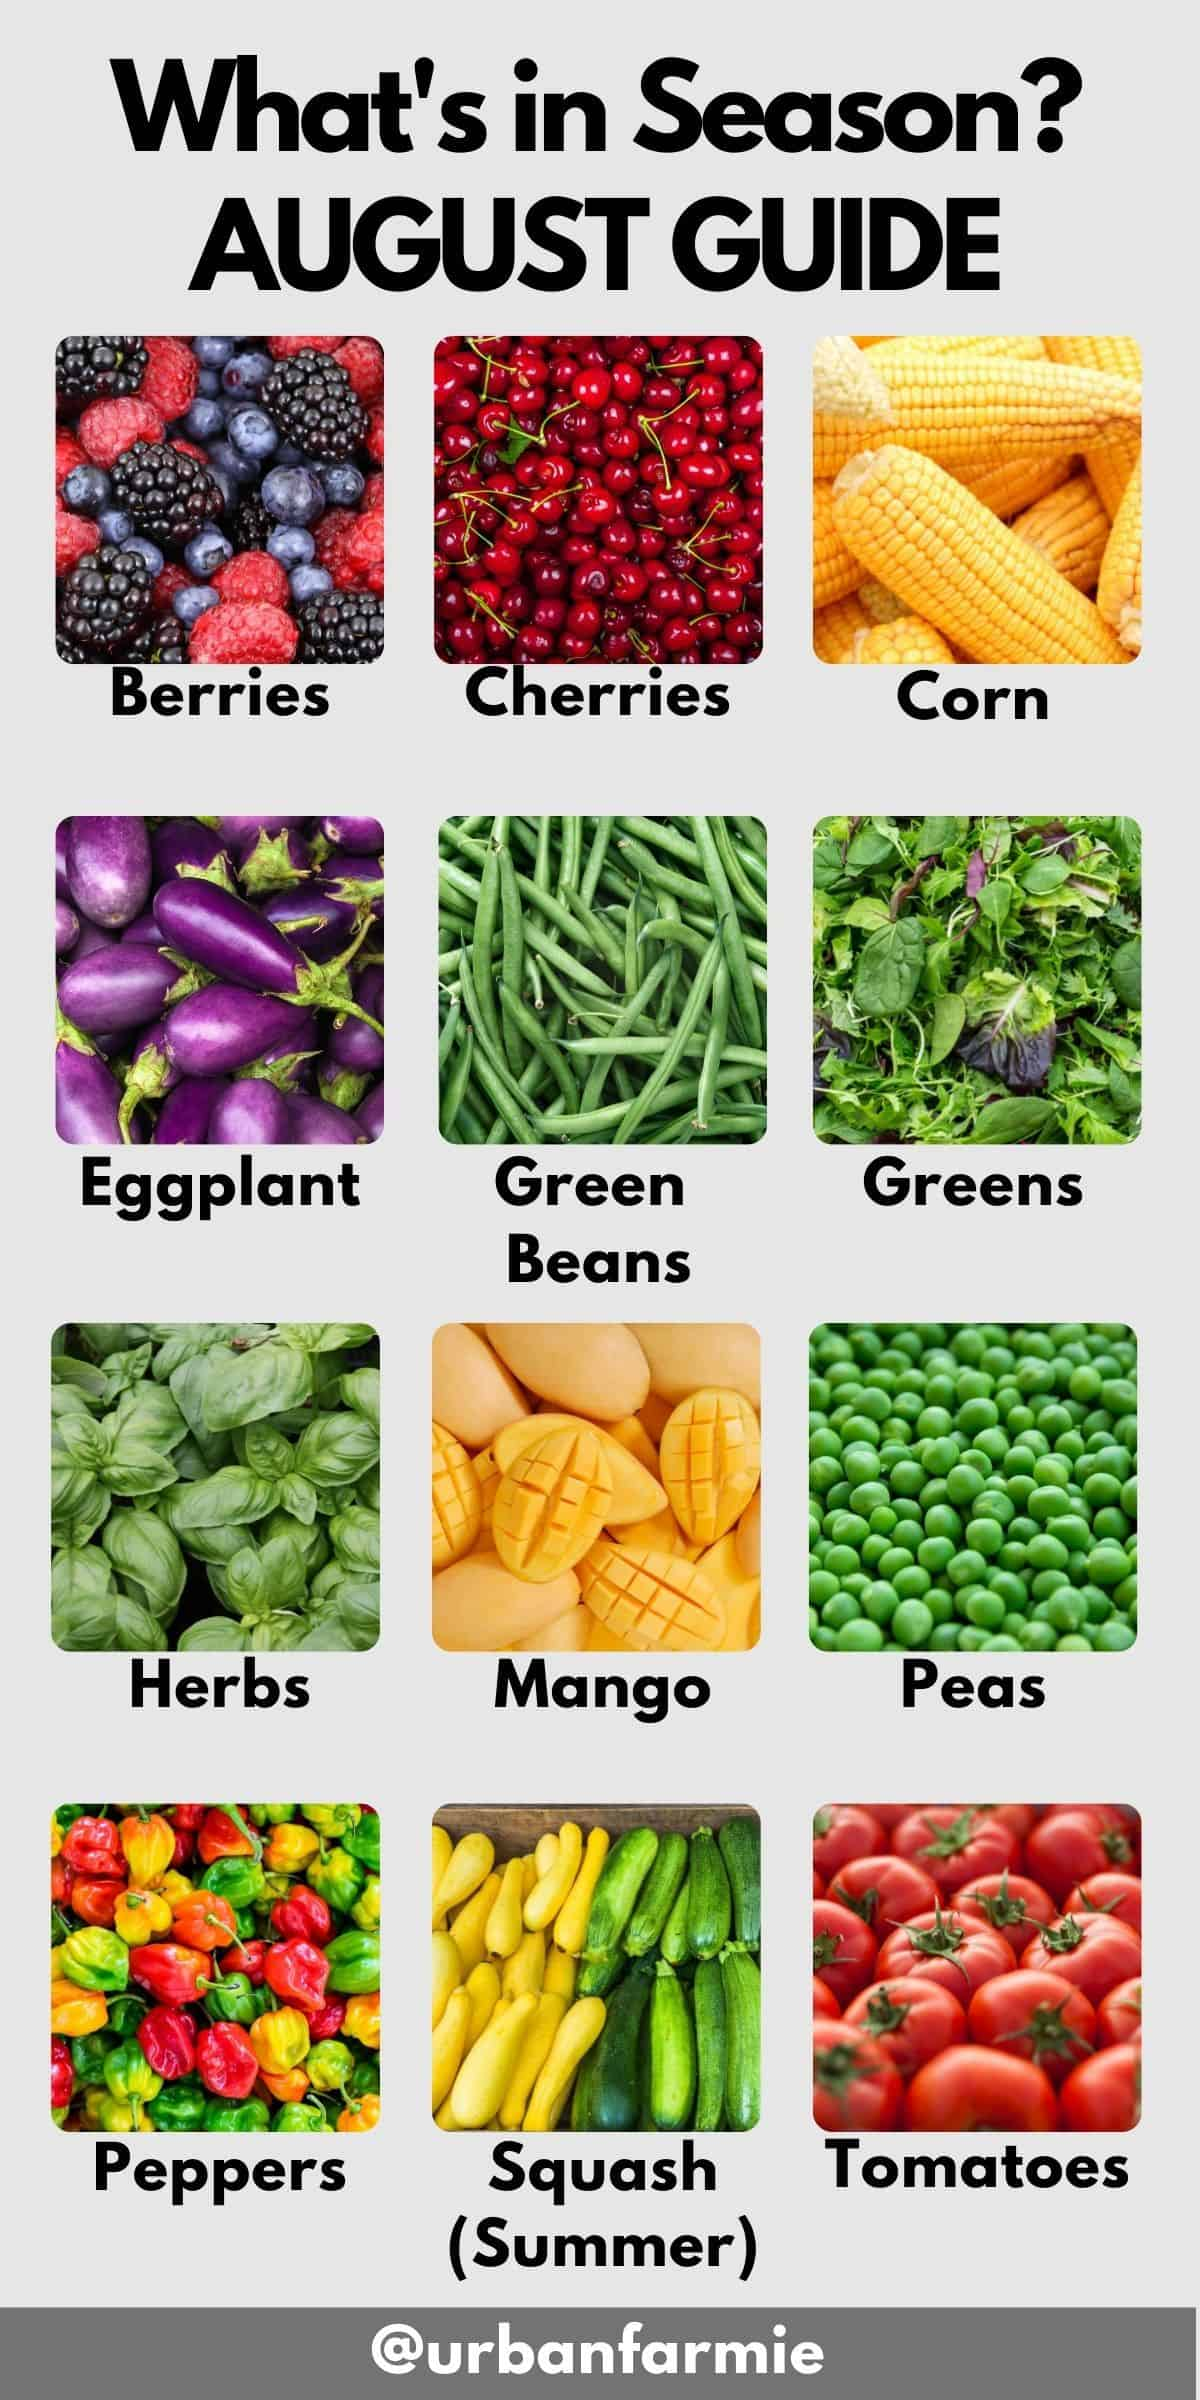 Collage showing fruits and veggies in season in August - check post for details!